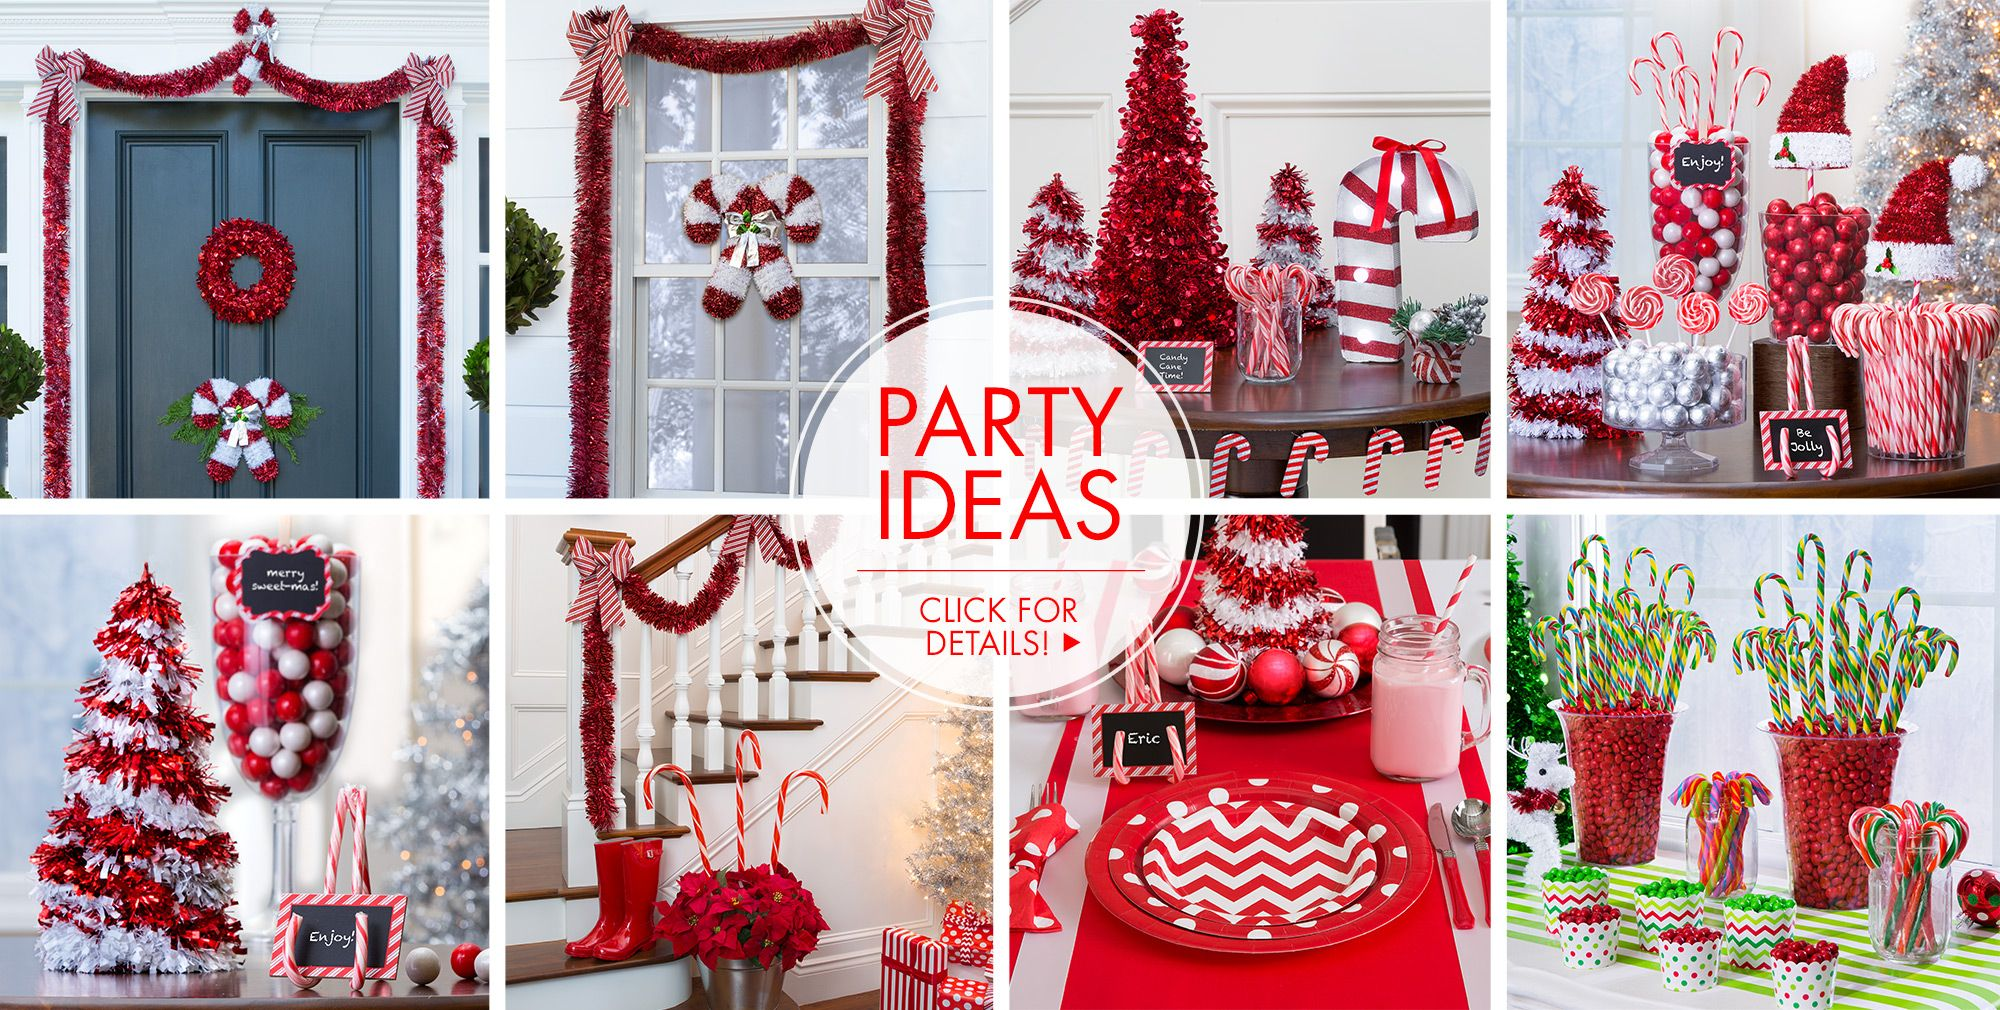 Candy Cane – Party Ideas